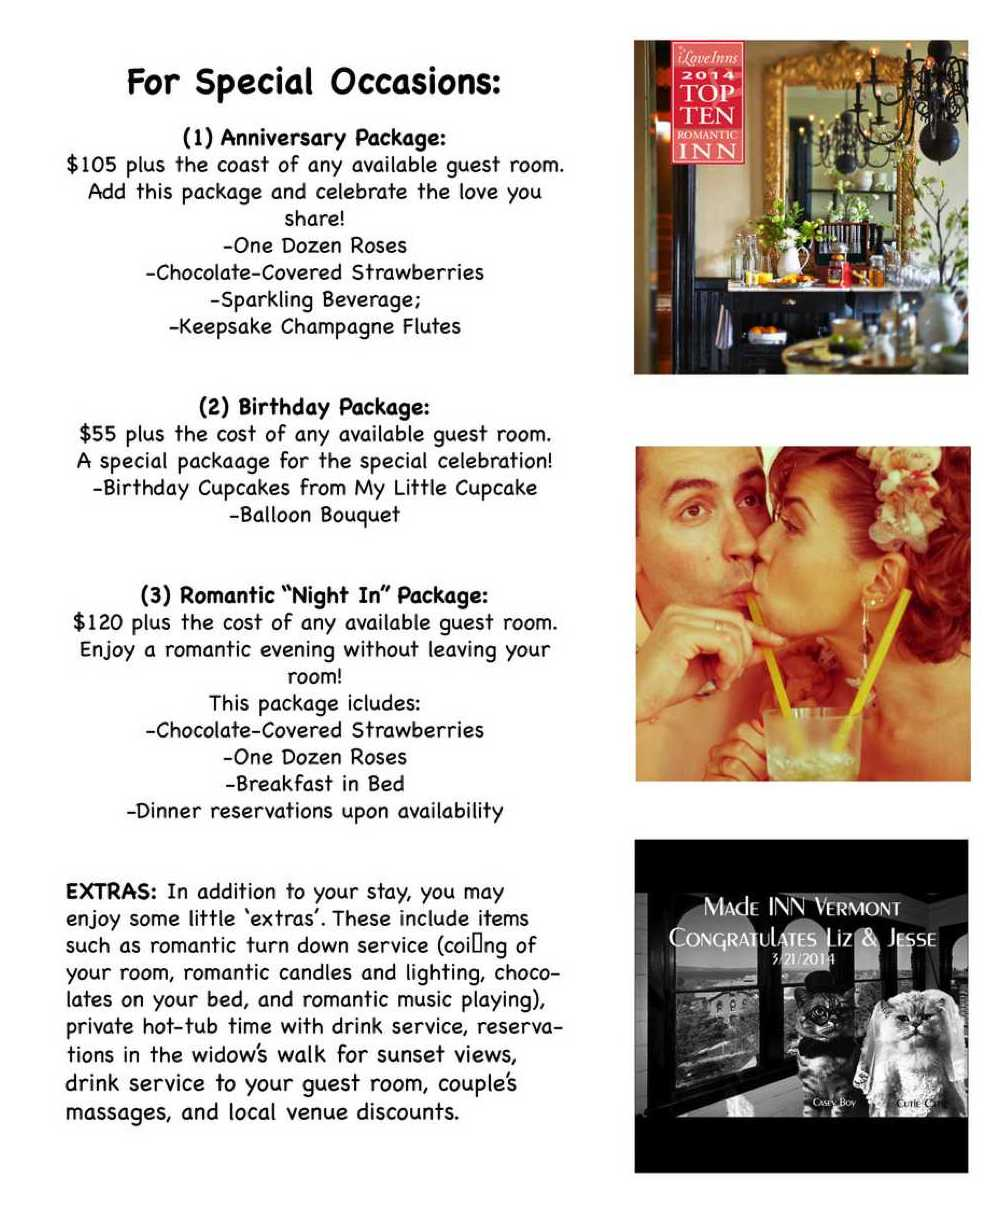 MIV Romance Packages